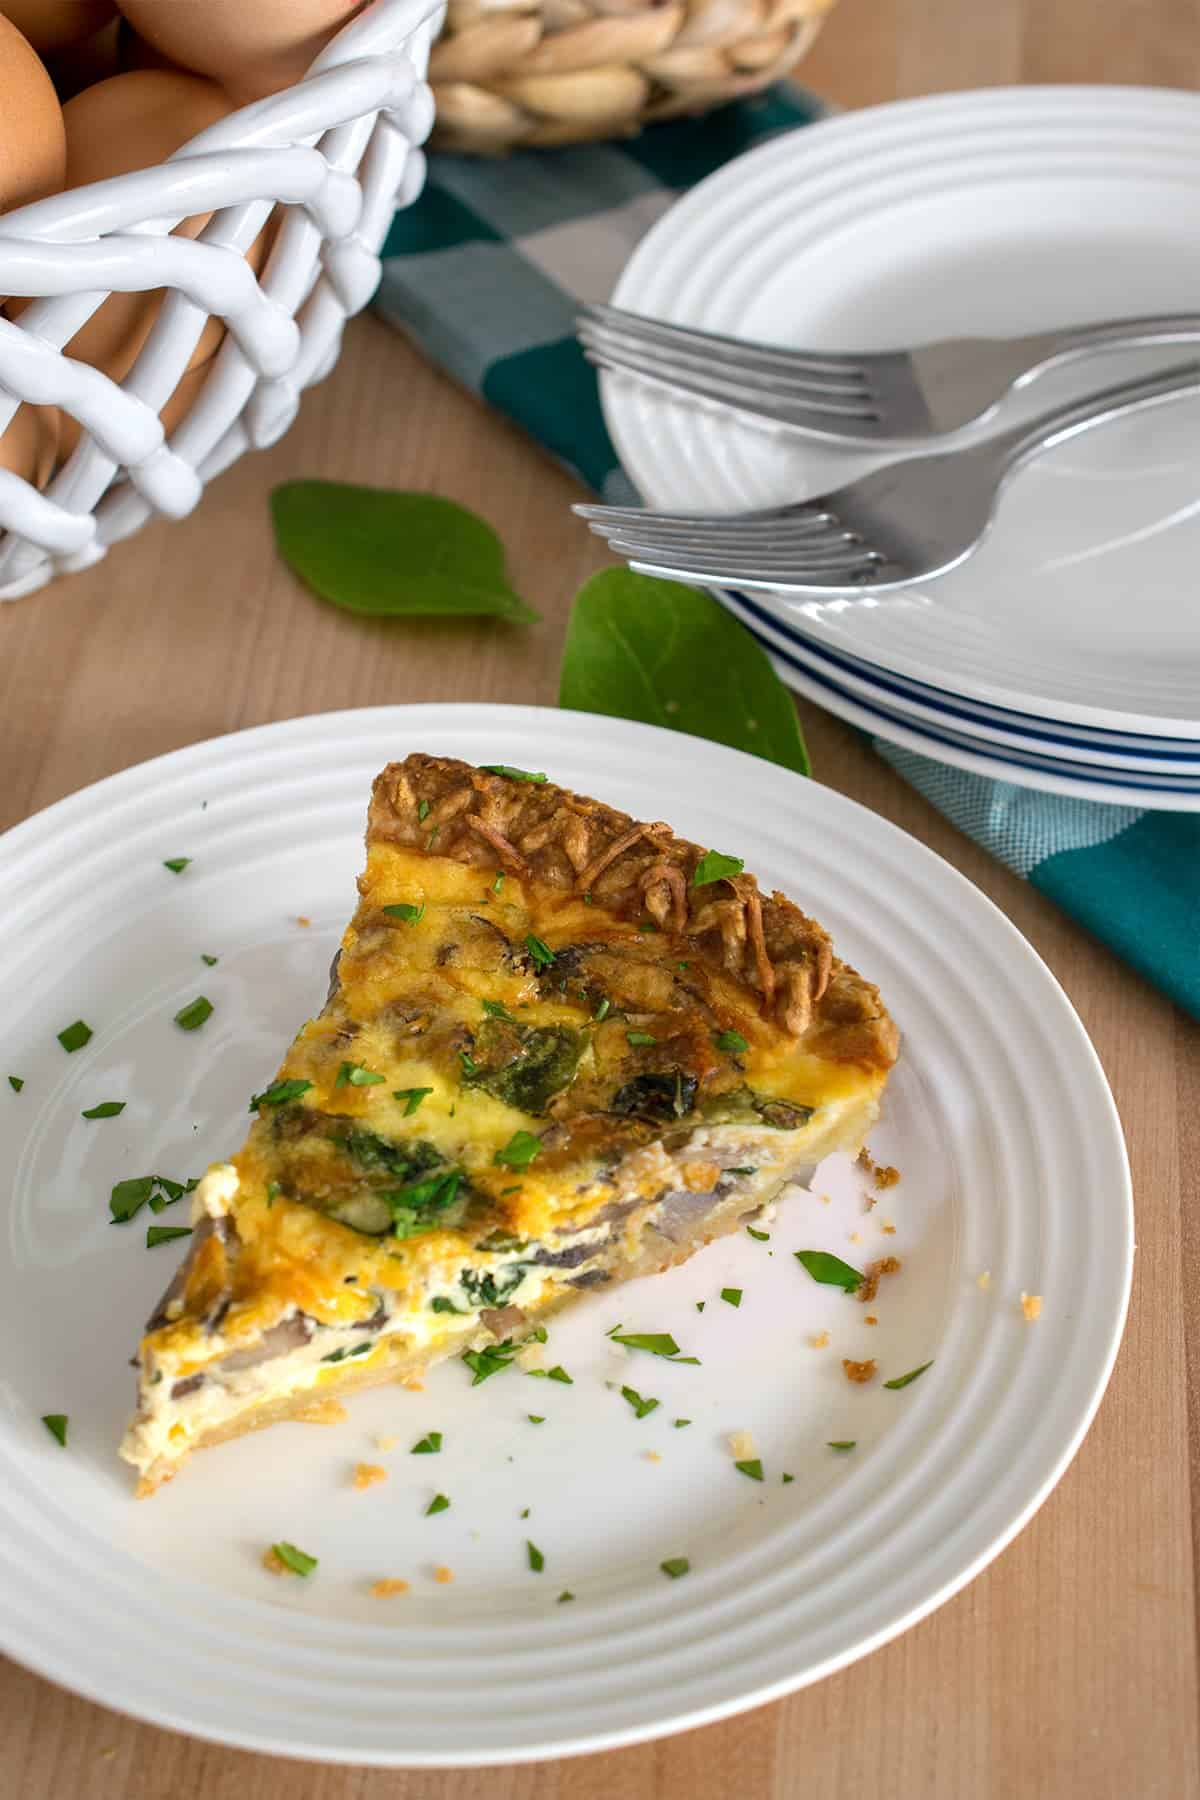 Spinach and mushroom quiche slice on white plate with stack of plates and two forks behind the main feature.